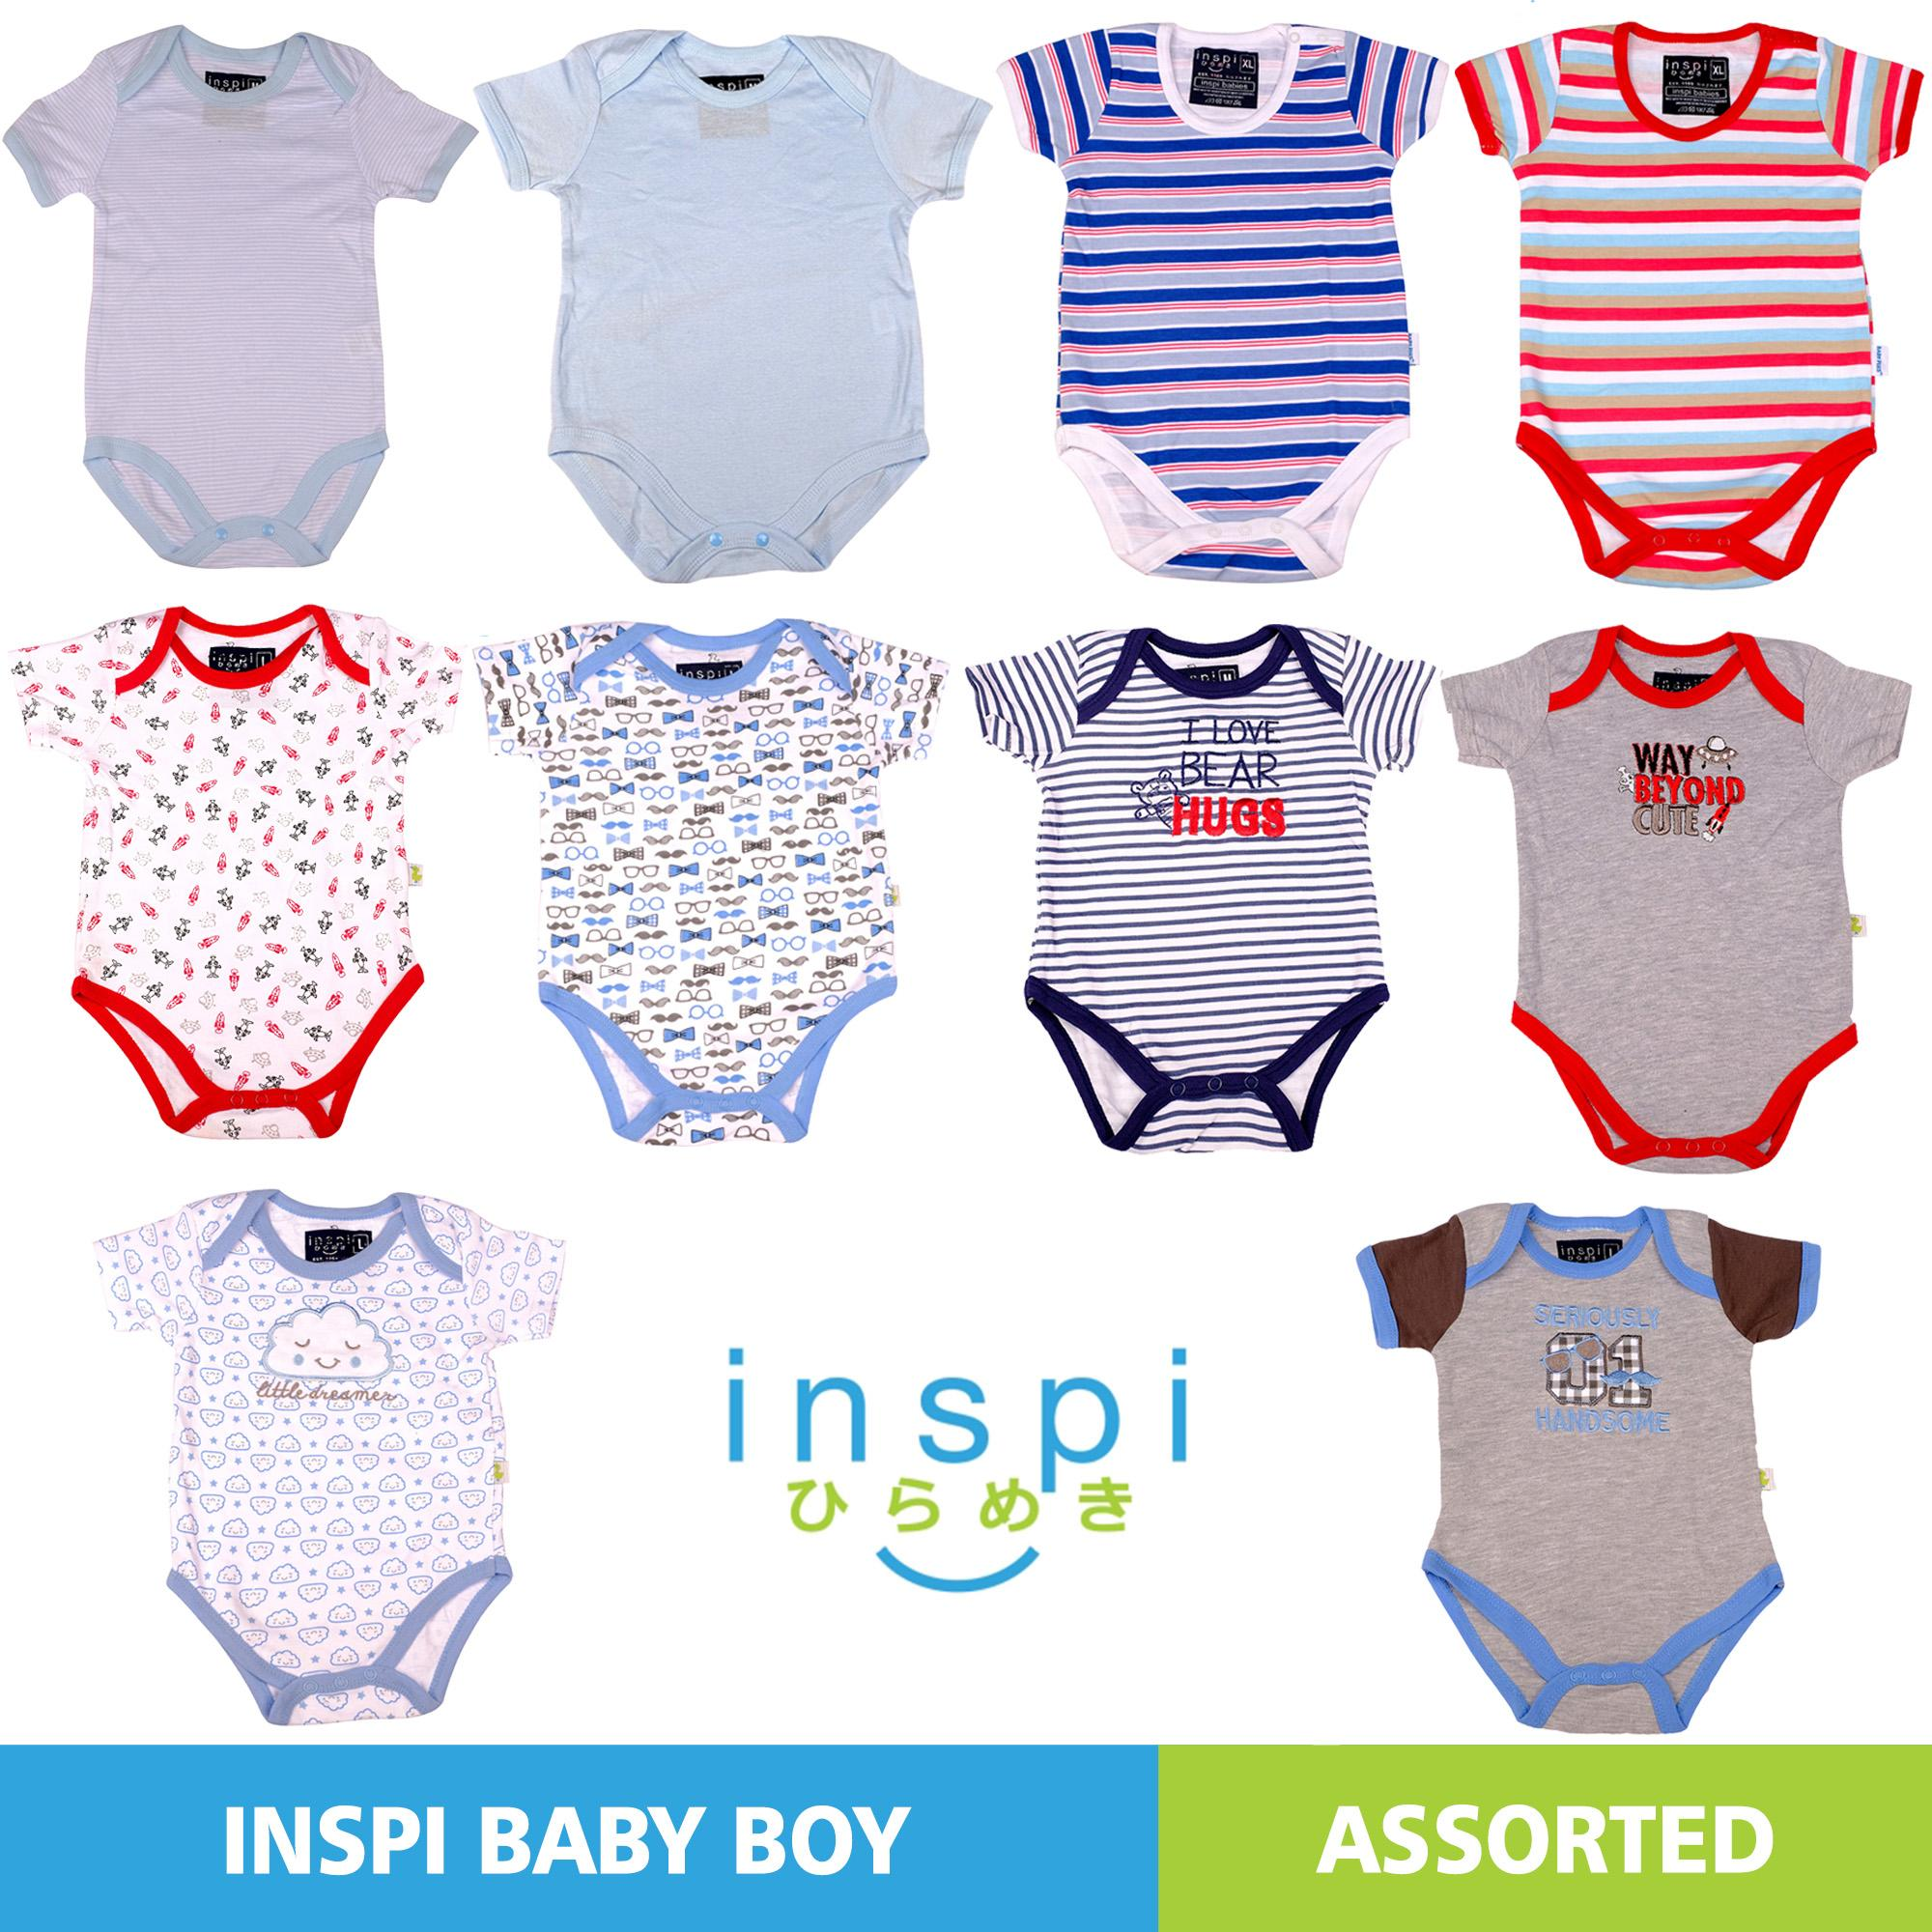 5873cbf1f52db INSPI Babies Boys ASSORTED (Set of 2) 100% Cotton Onesies Newborn Infant  Quality